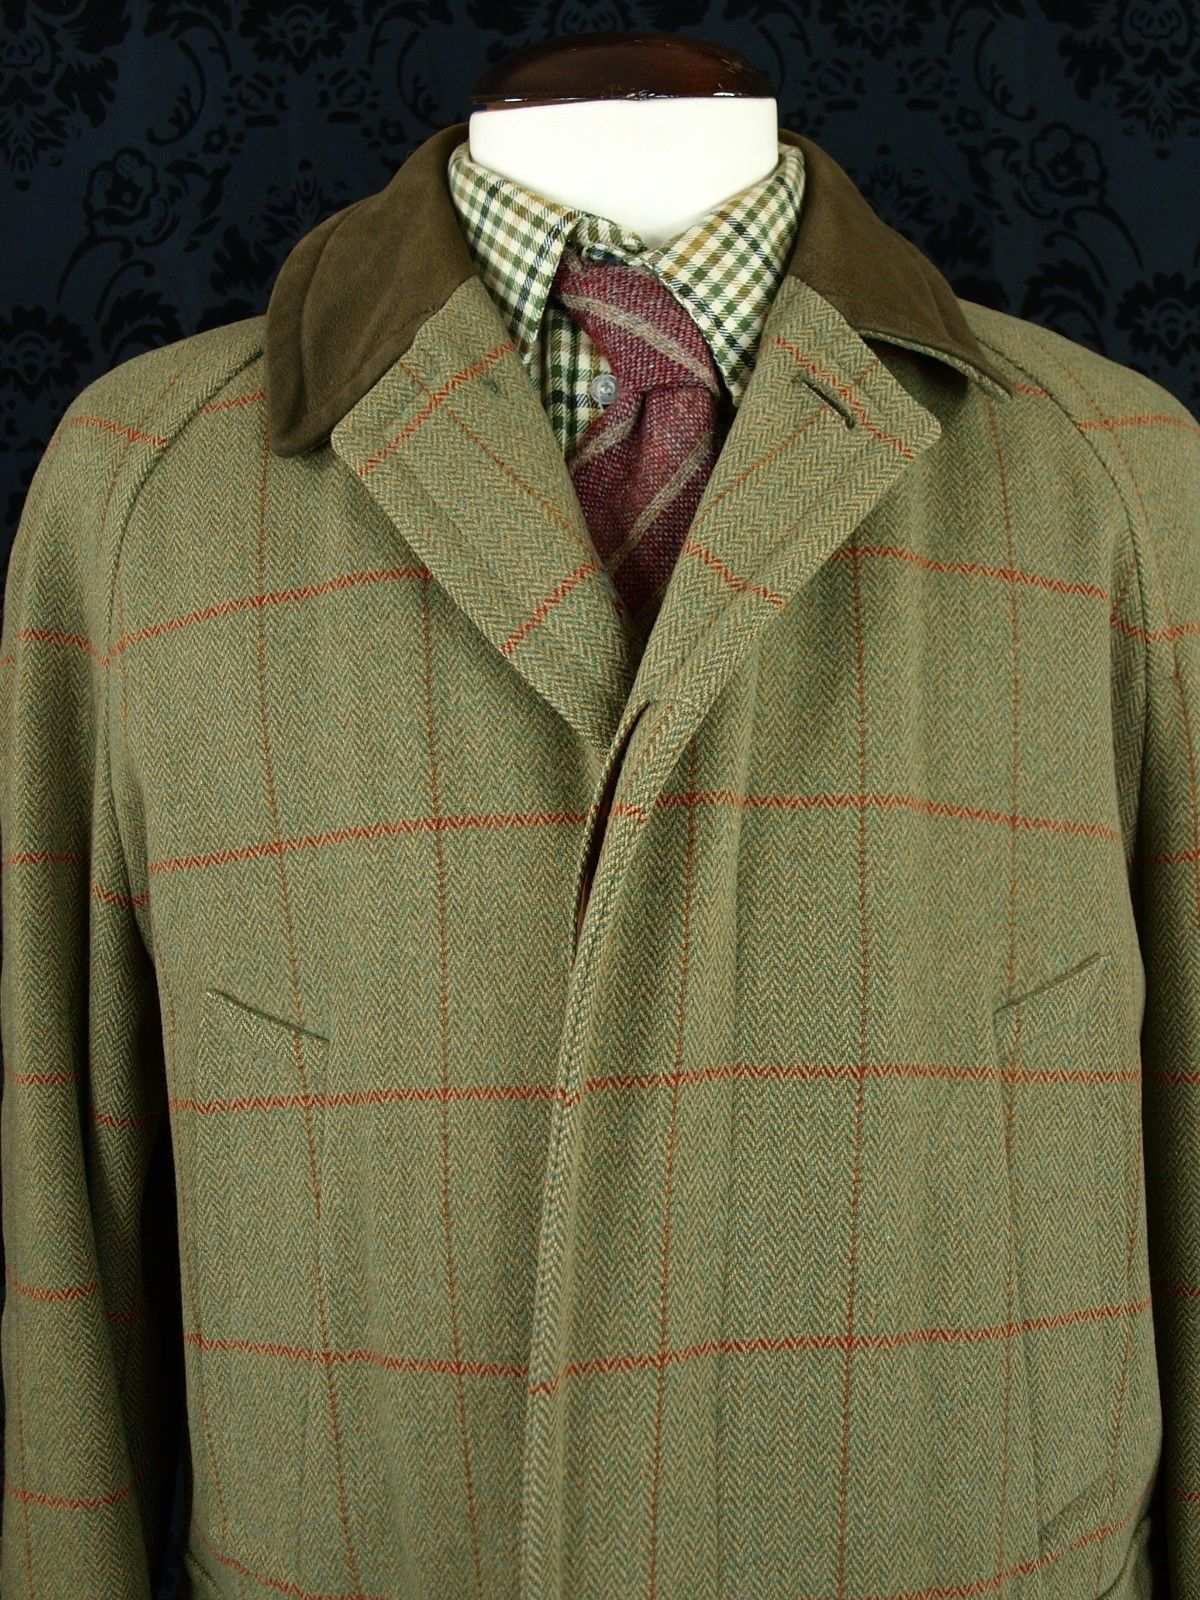 Superb Mens Austin Reed Bladen Tweed Field Shooting Hunting Coat 44 Short Large Ebay Hunt Coat Tweed Austin Reed